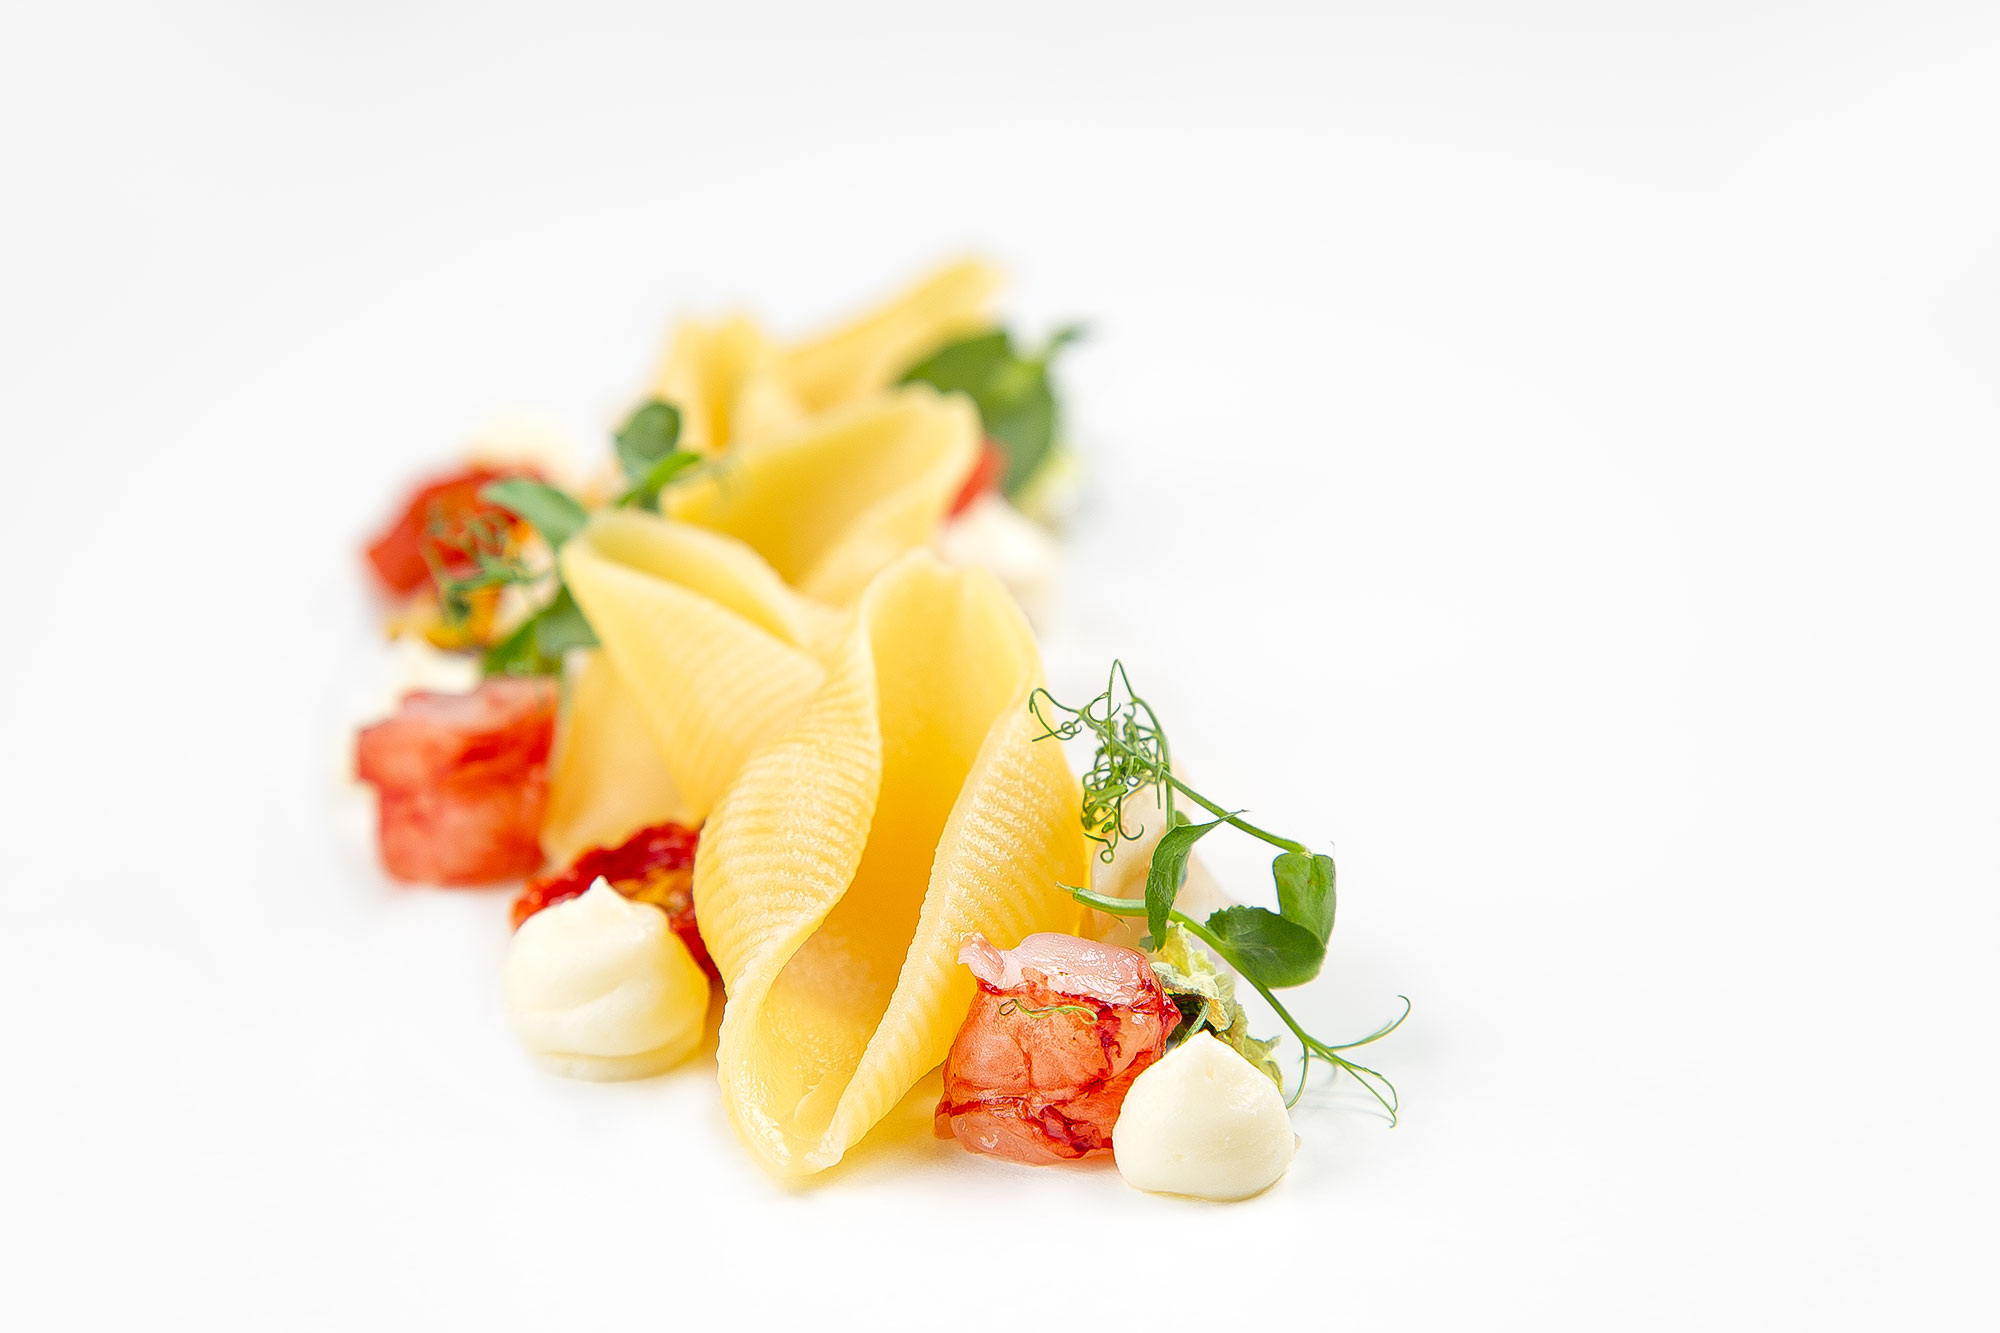 Fine dining Photography by Adrian Kilchherr; Professional Food Photographer